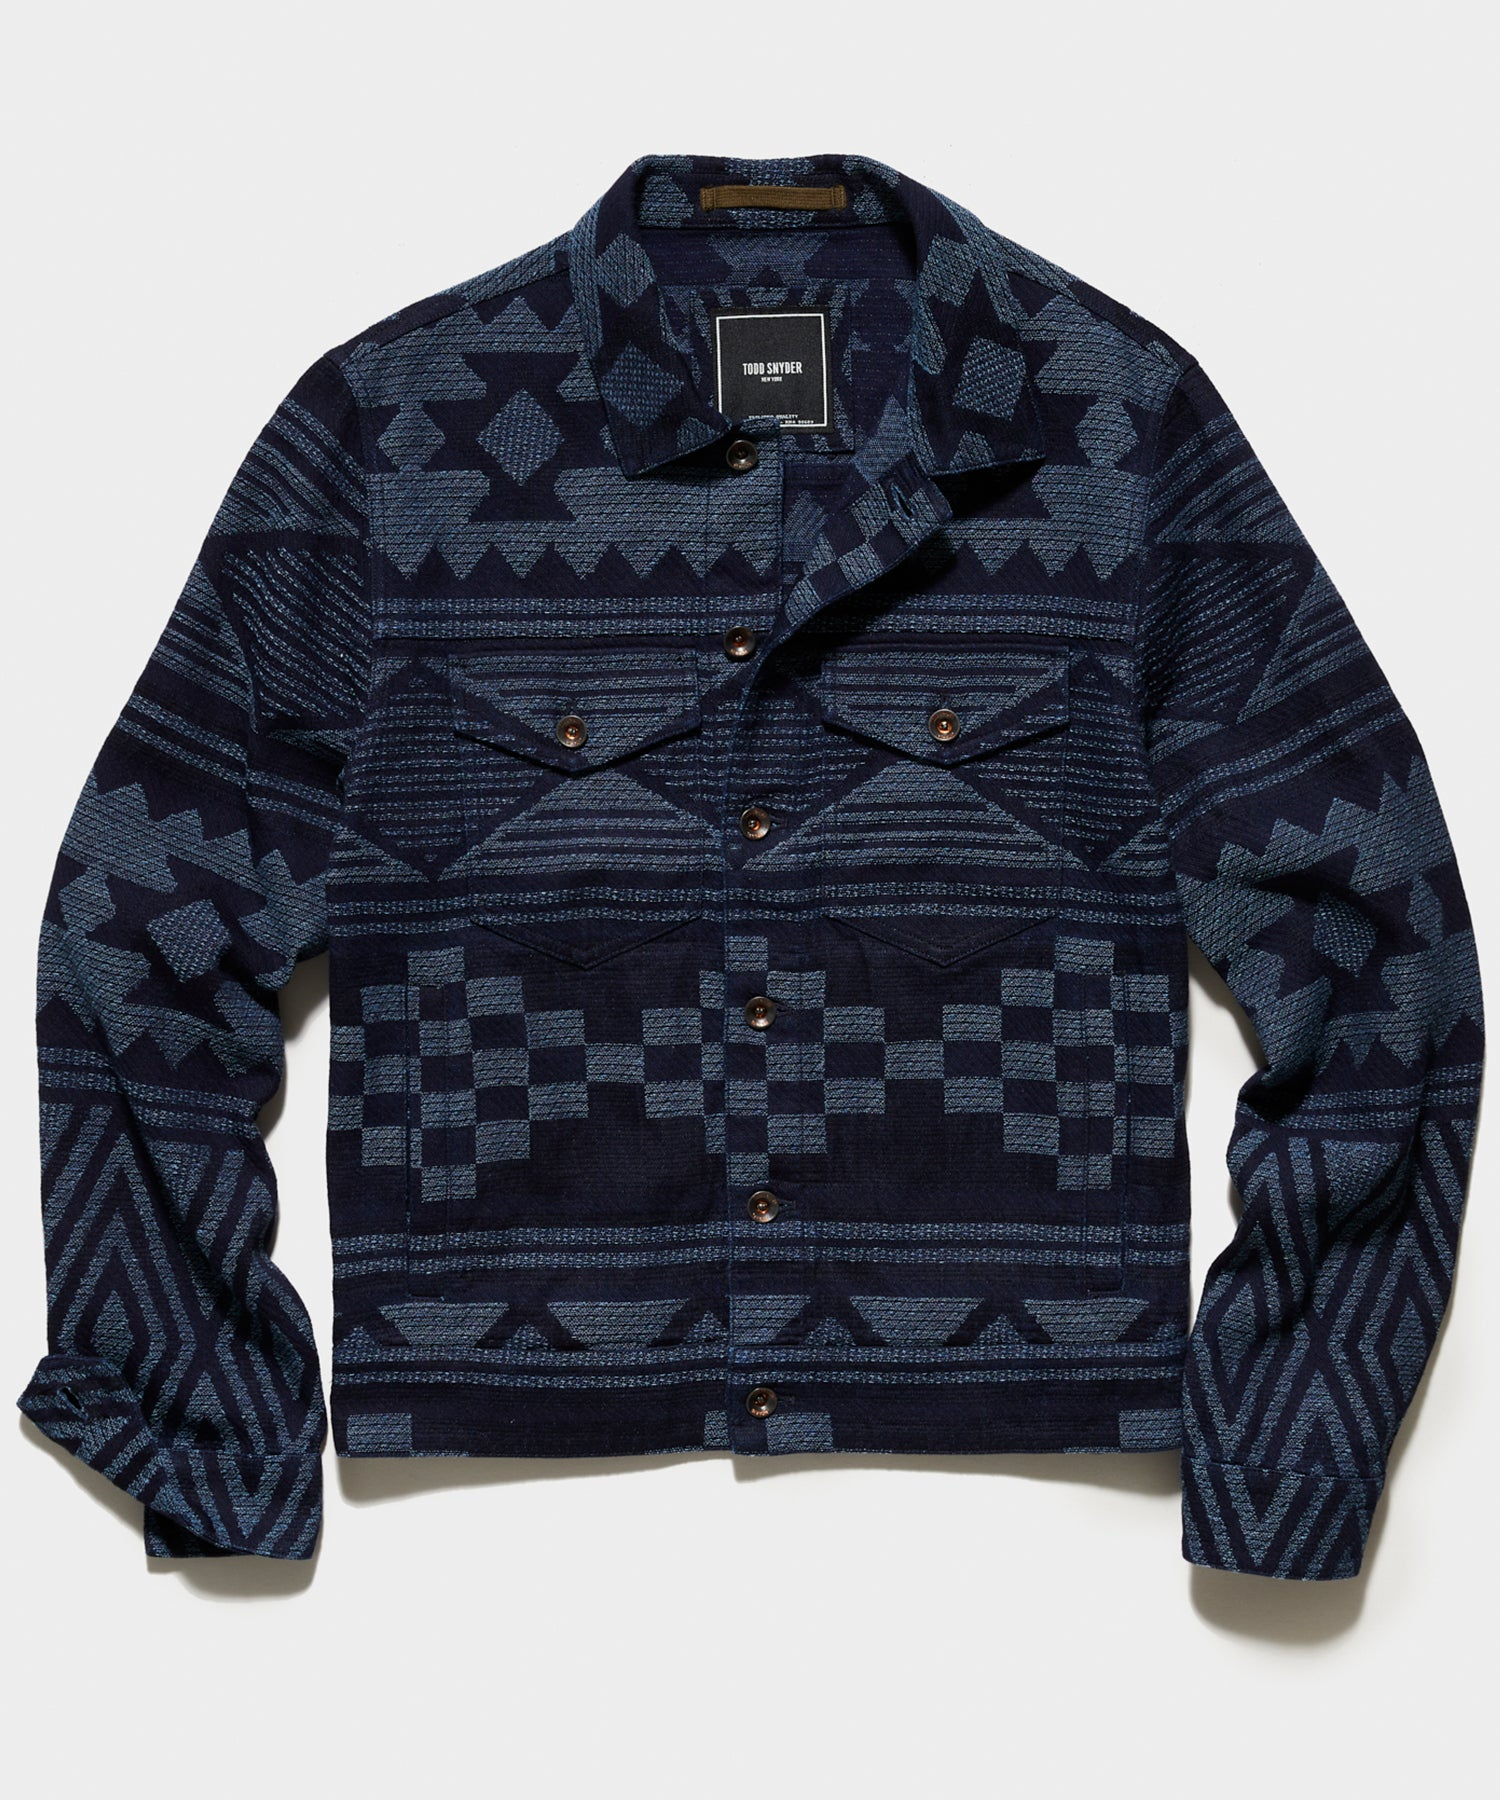 Japanese Jacquard Dylan Jacket in  Indigo